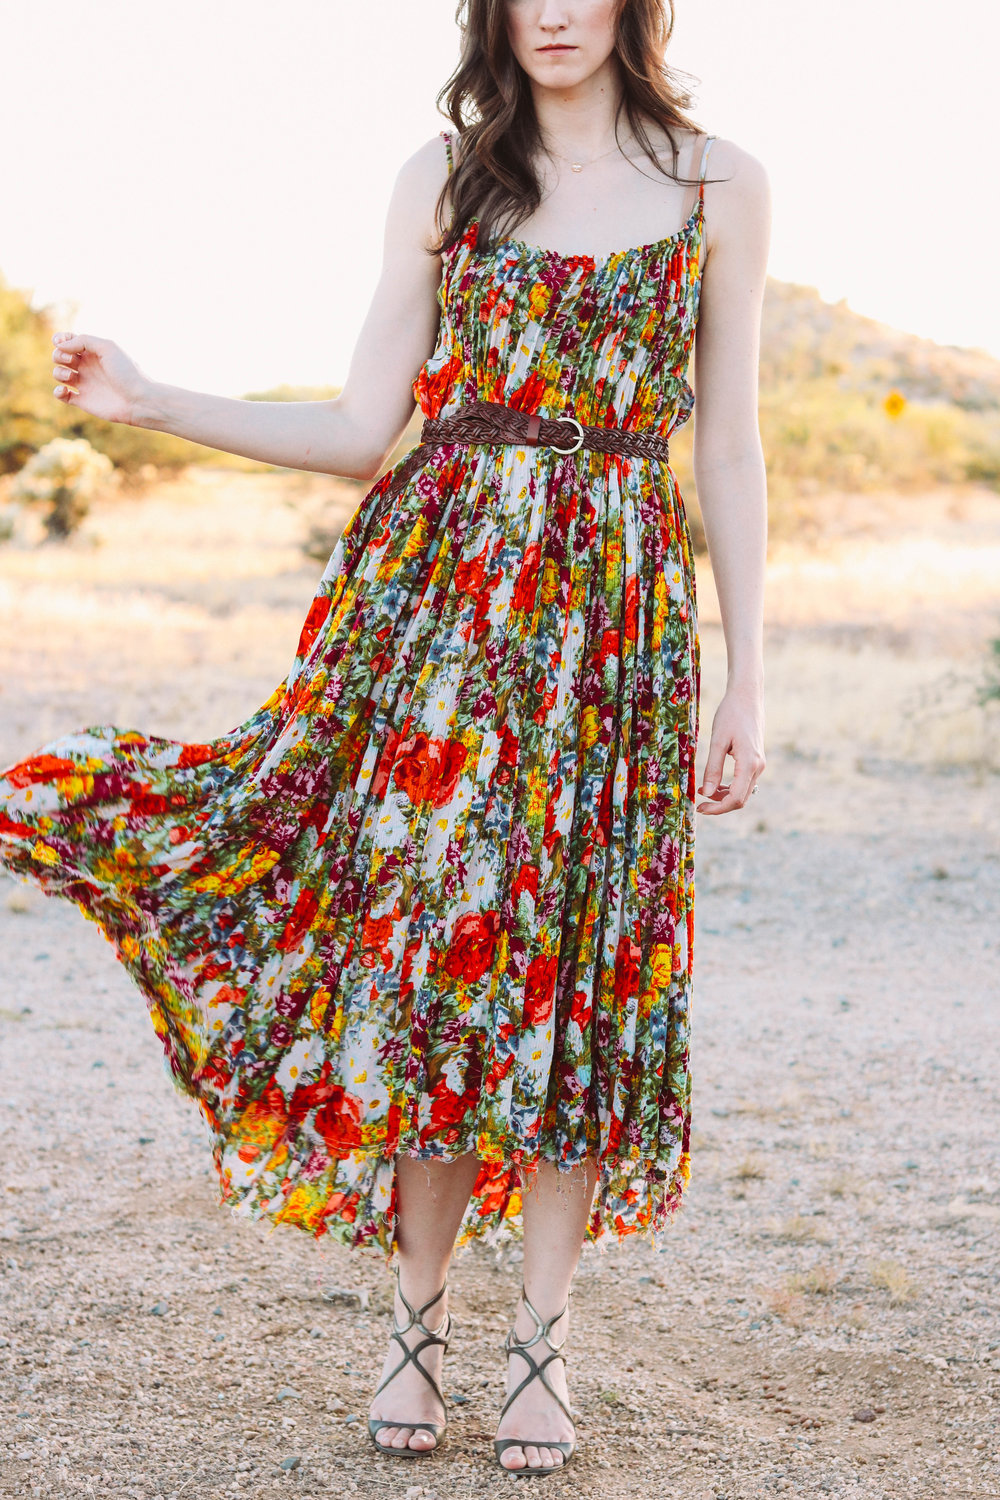 bb-bohemian-florals-008 (1 of 1).jpg